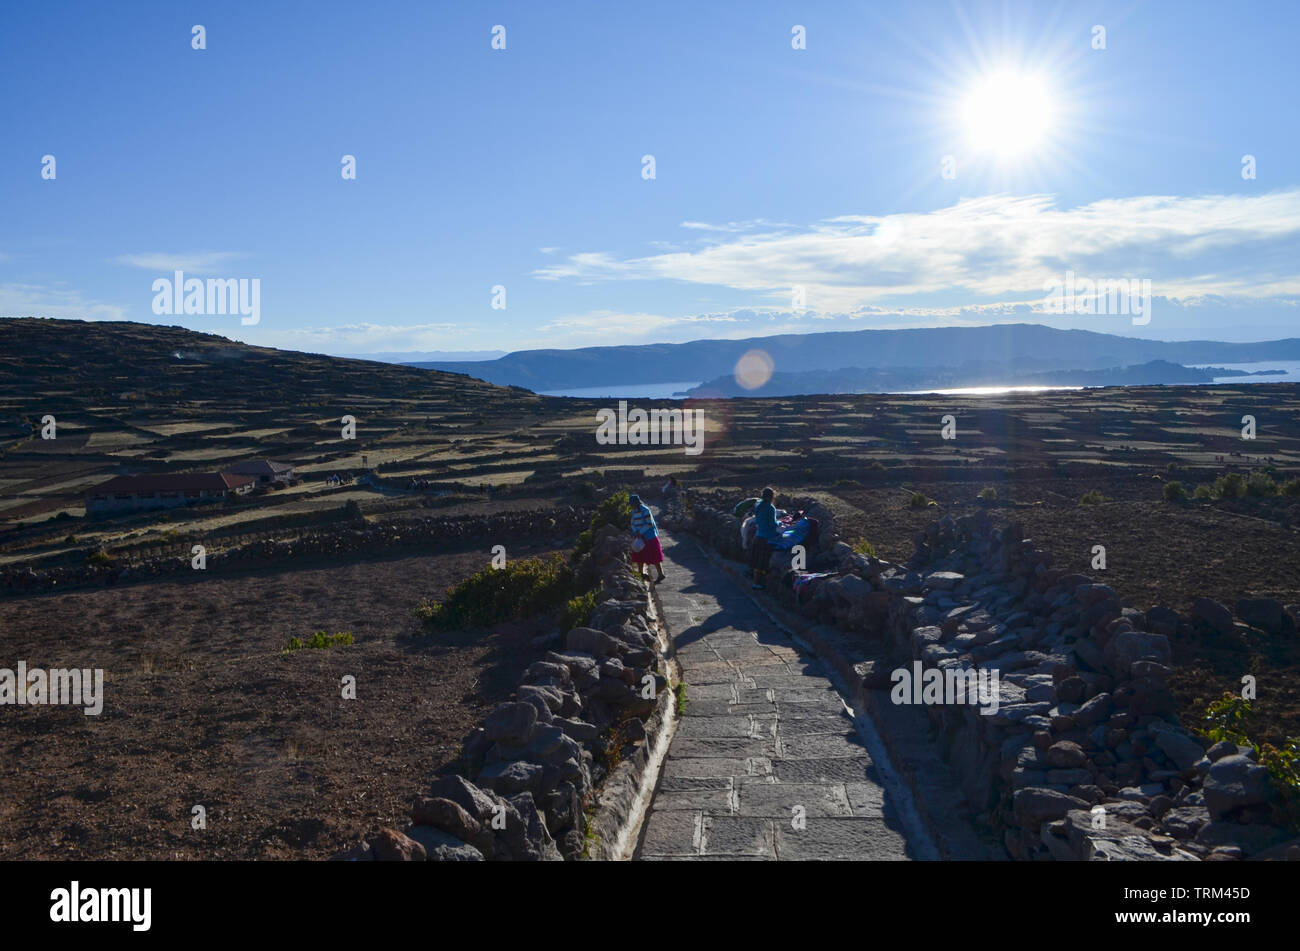 Peru,Puno.Details of stones in the field of the Island of Taquile. - Stock Image